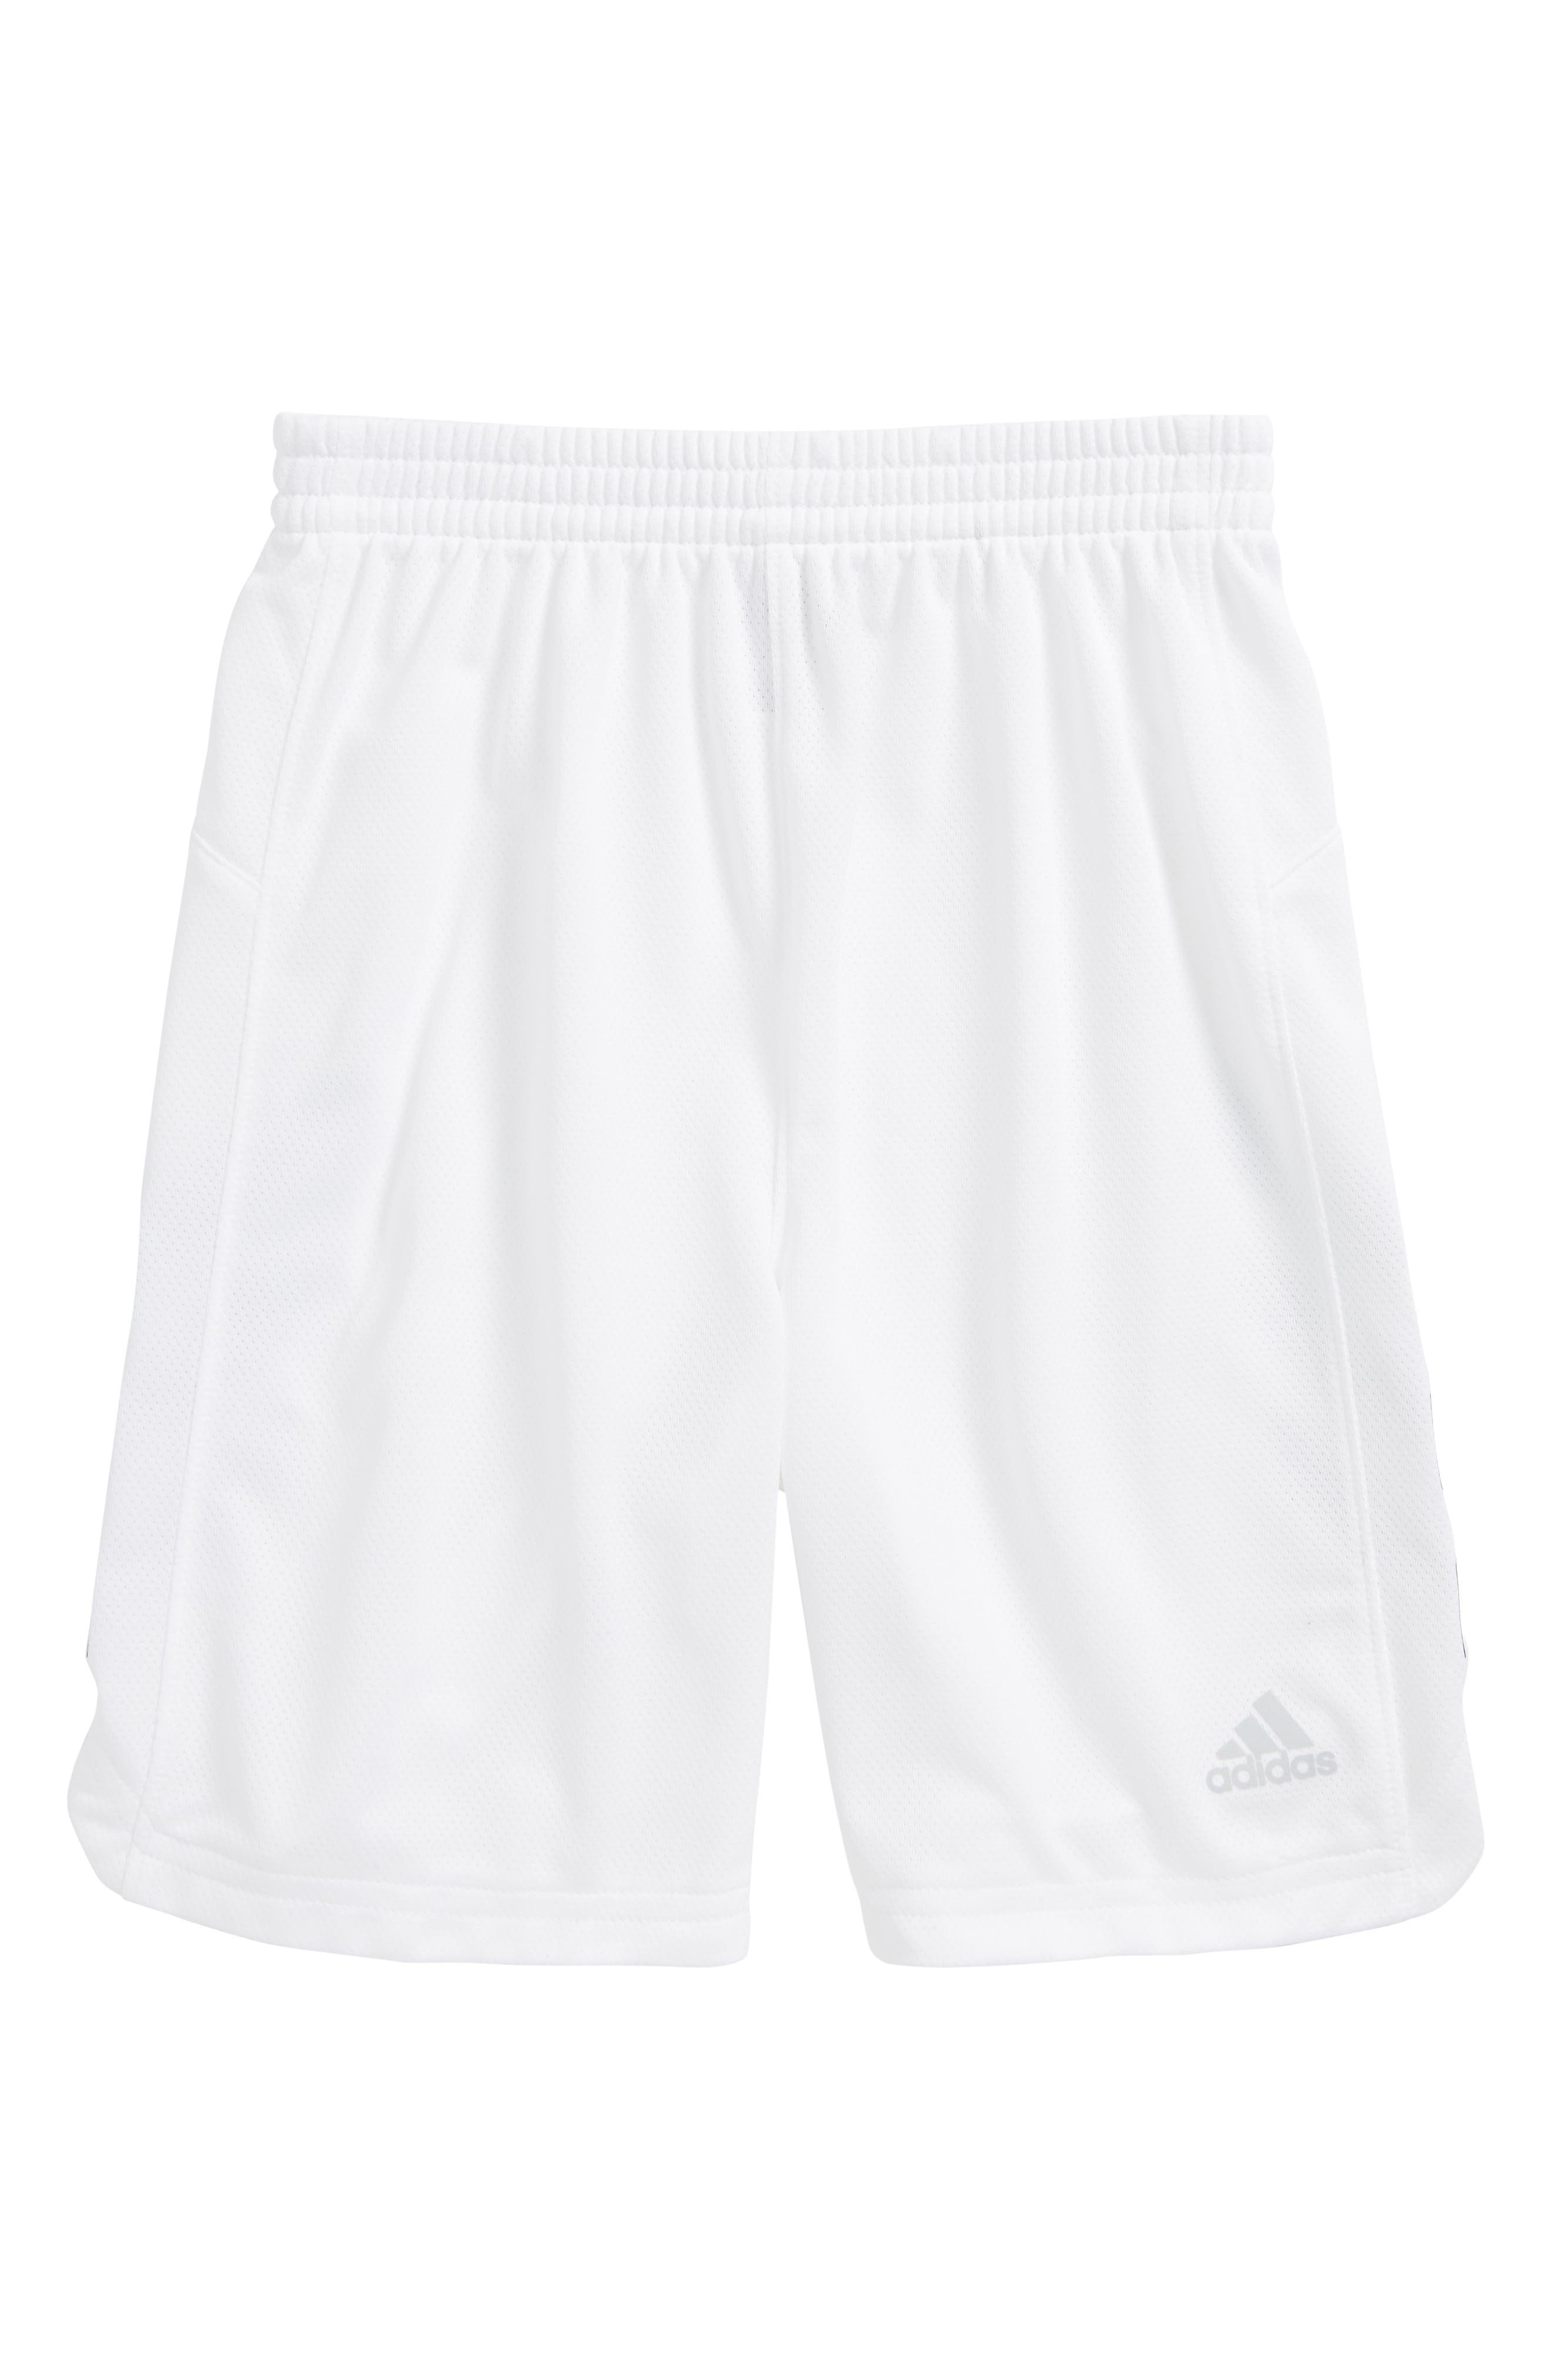 Climacool<sup>®</sup> Sport Shorts,                         Main,                         color, White